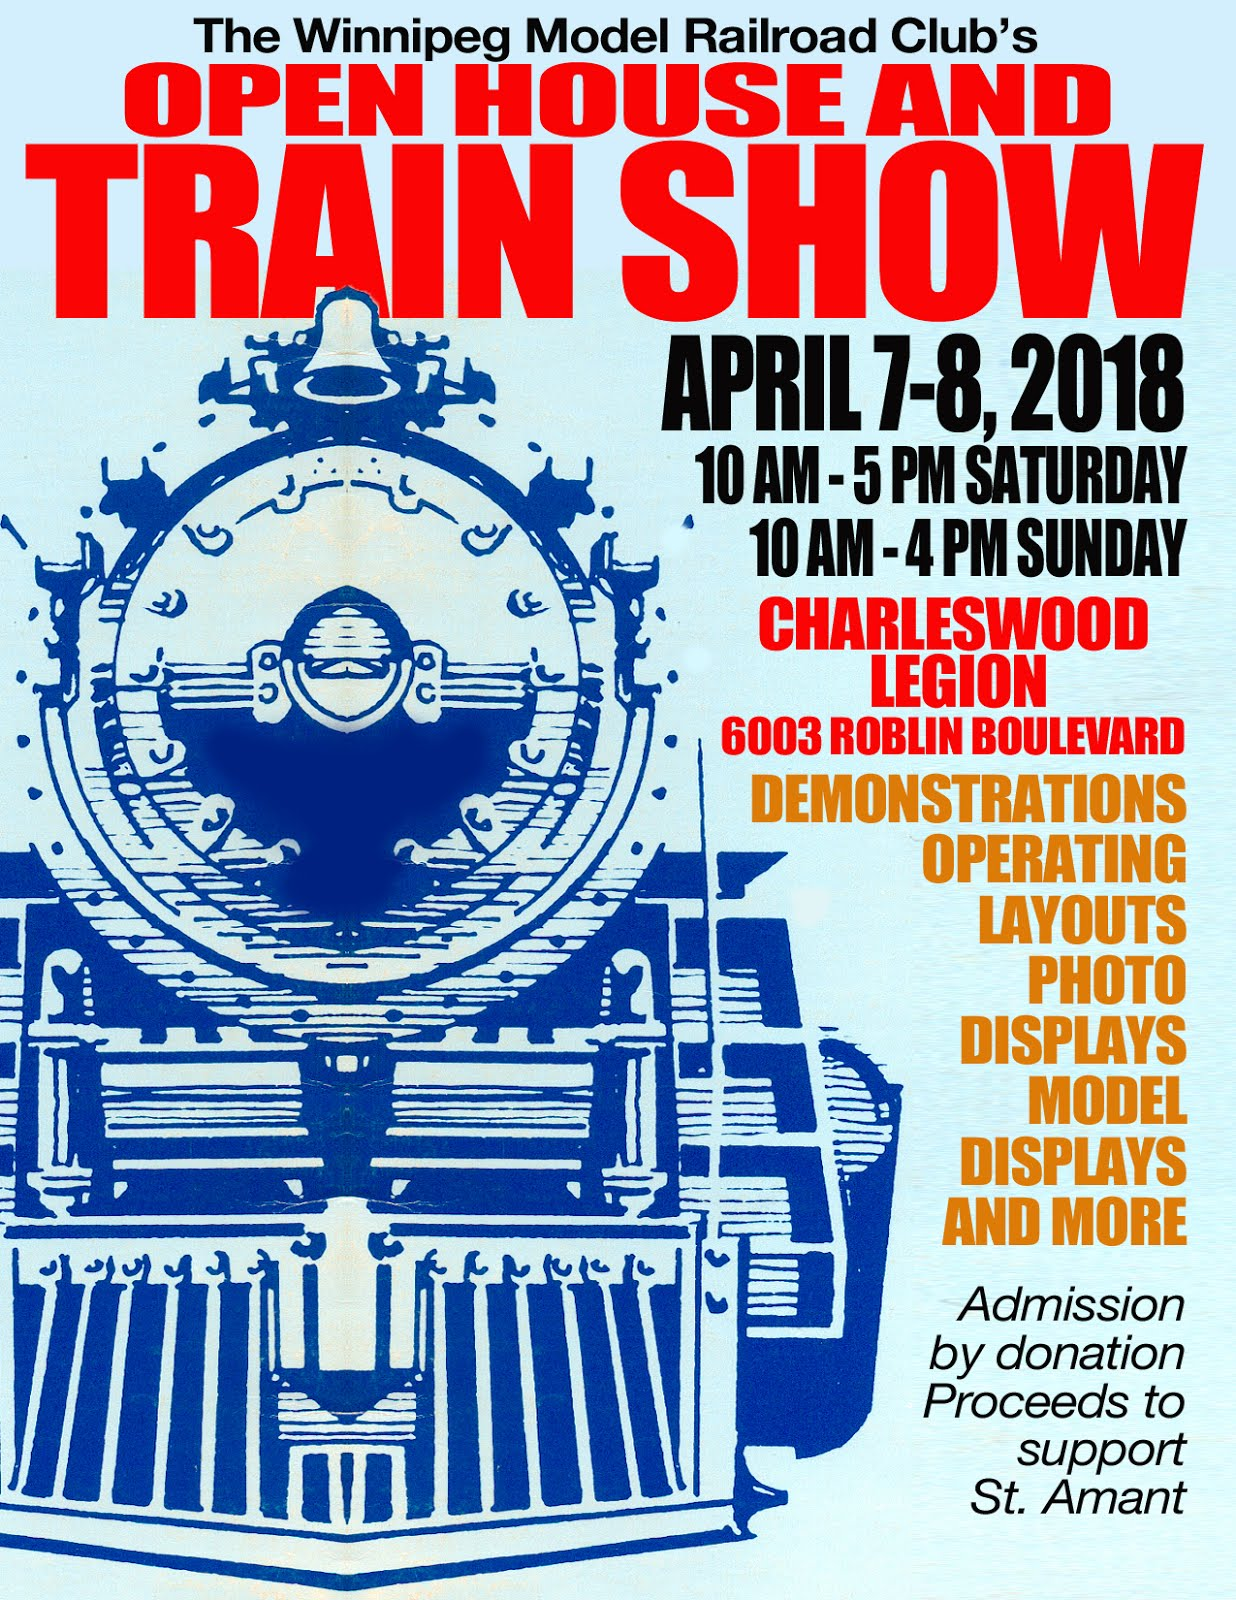 WINNIPEG MODEL RAILROAD CLUB'S ANNUAL OPEN HOUSE AND TRAIN SHOW